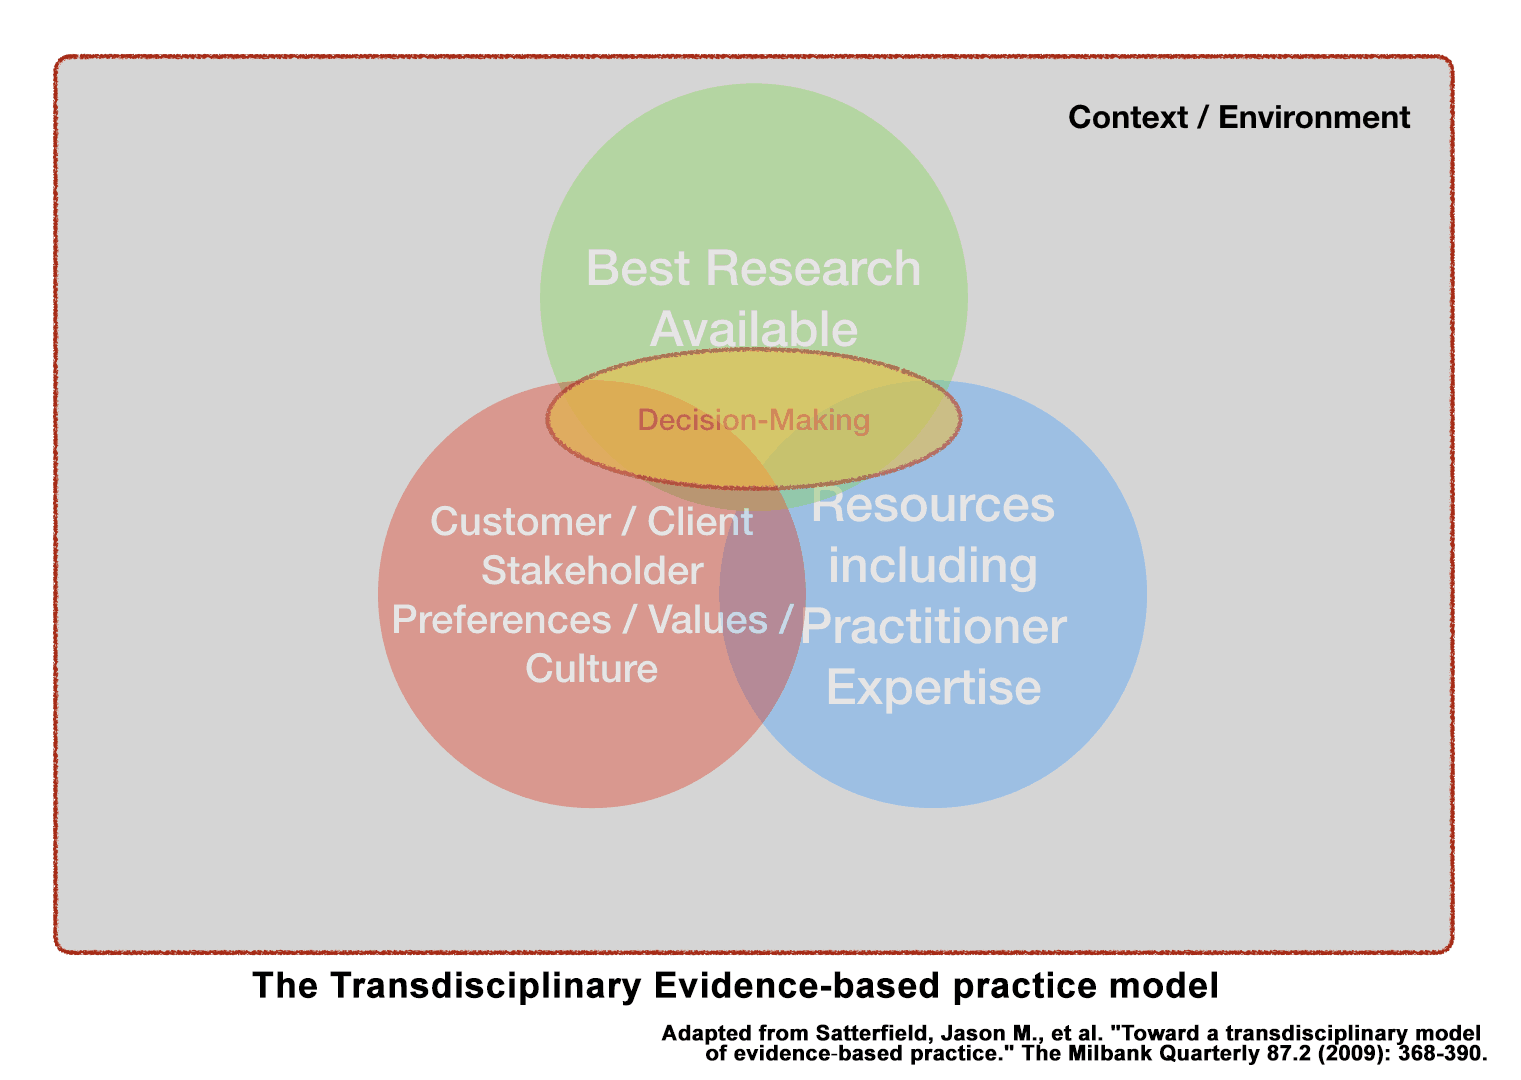 The Transdisciplinary Evidence-based practice model